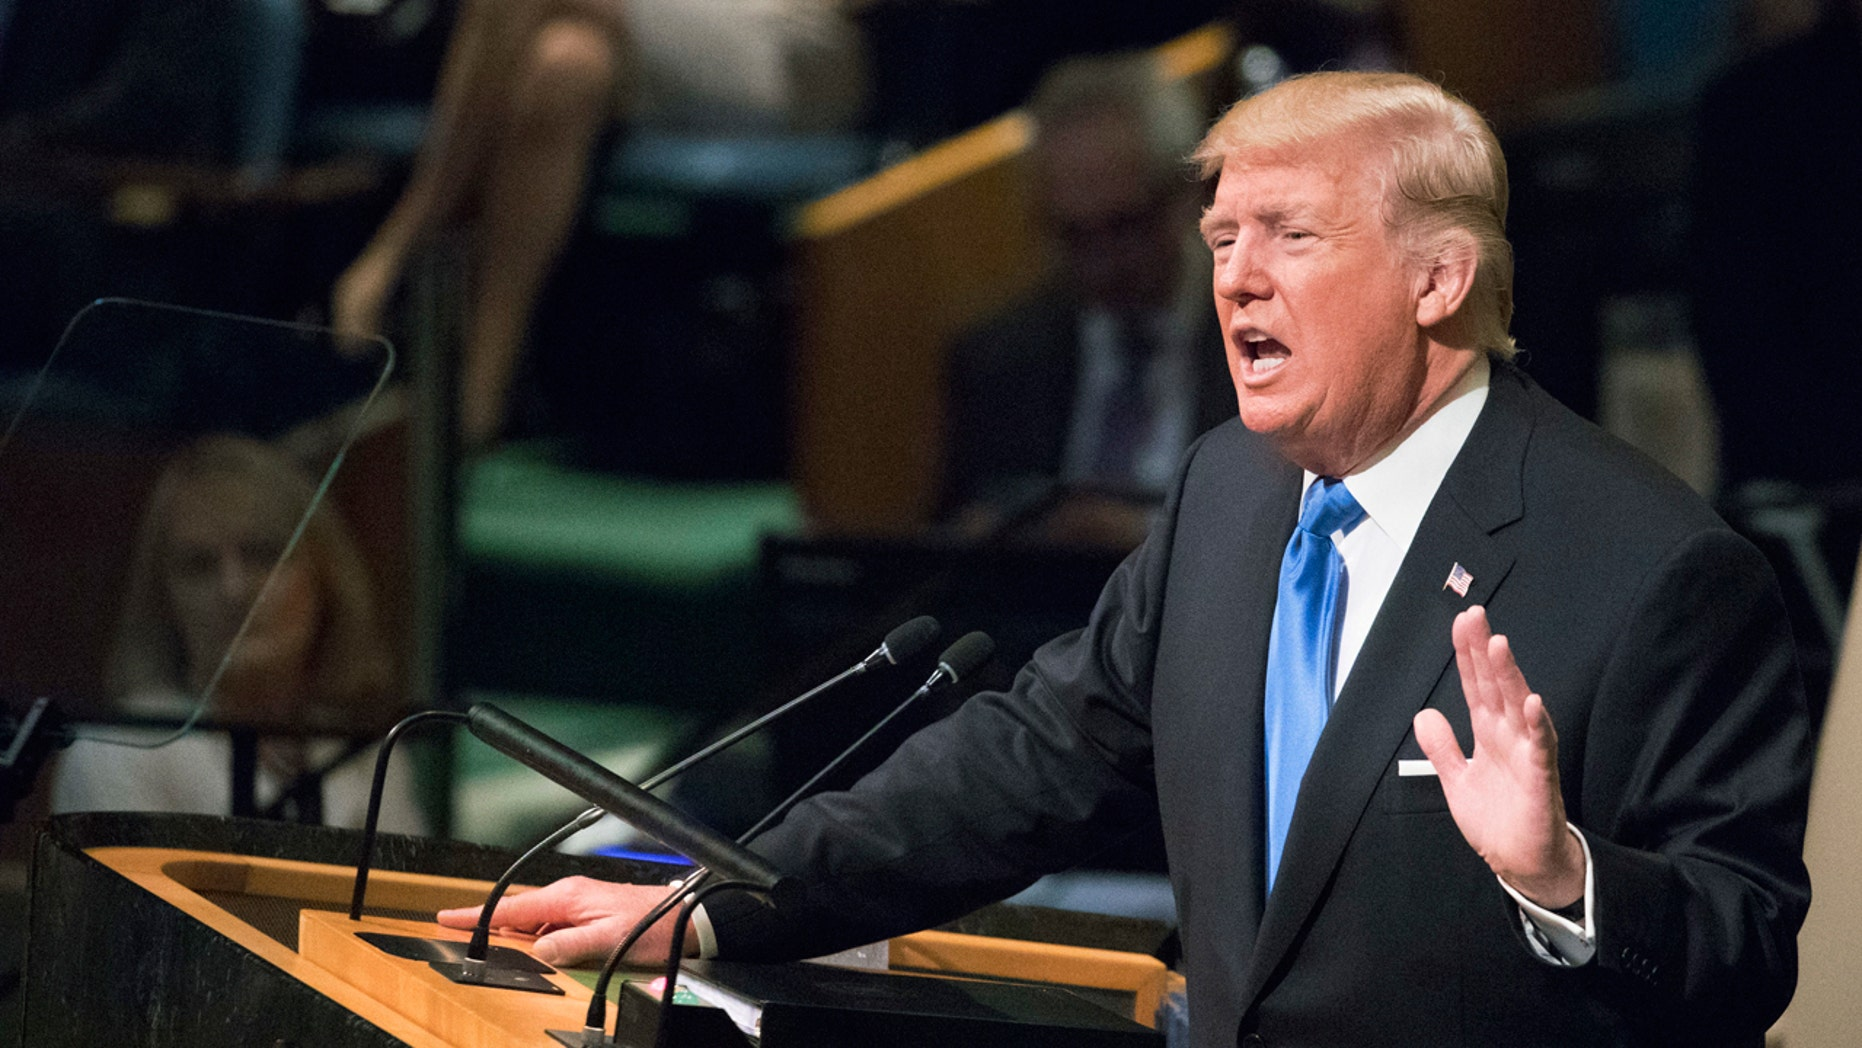 """In his speech to the U.N. General Assembly, President Trump threatened to """"totally destroy"""" North Korea if it didn't end its nuclear weapons program."""